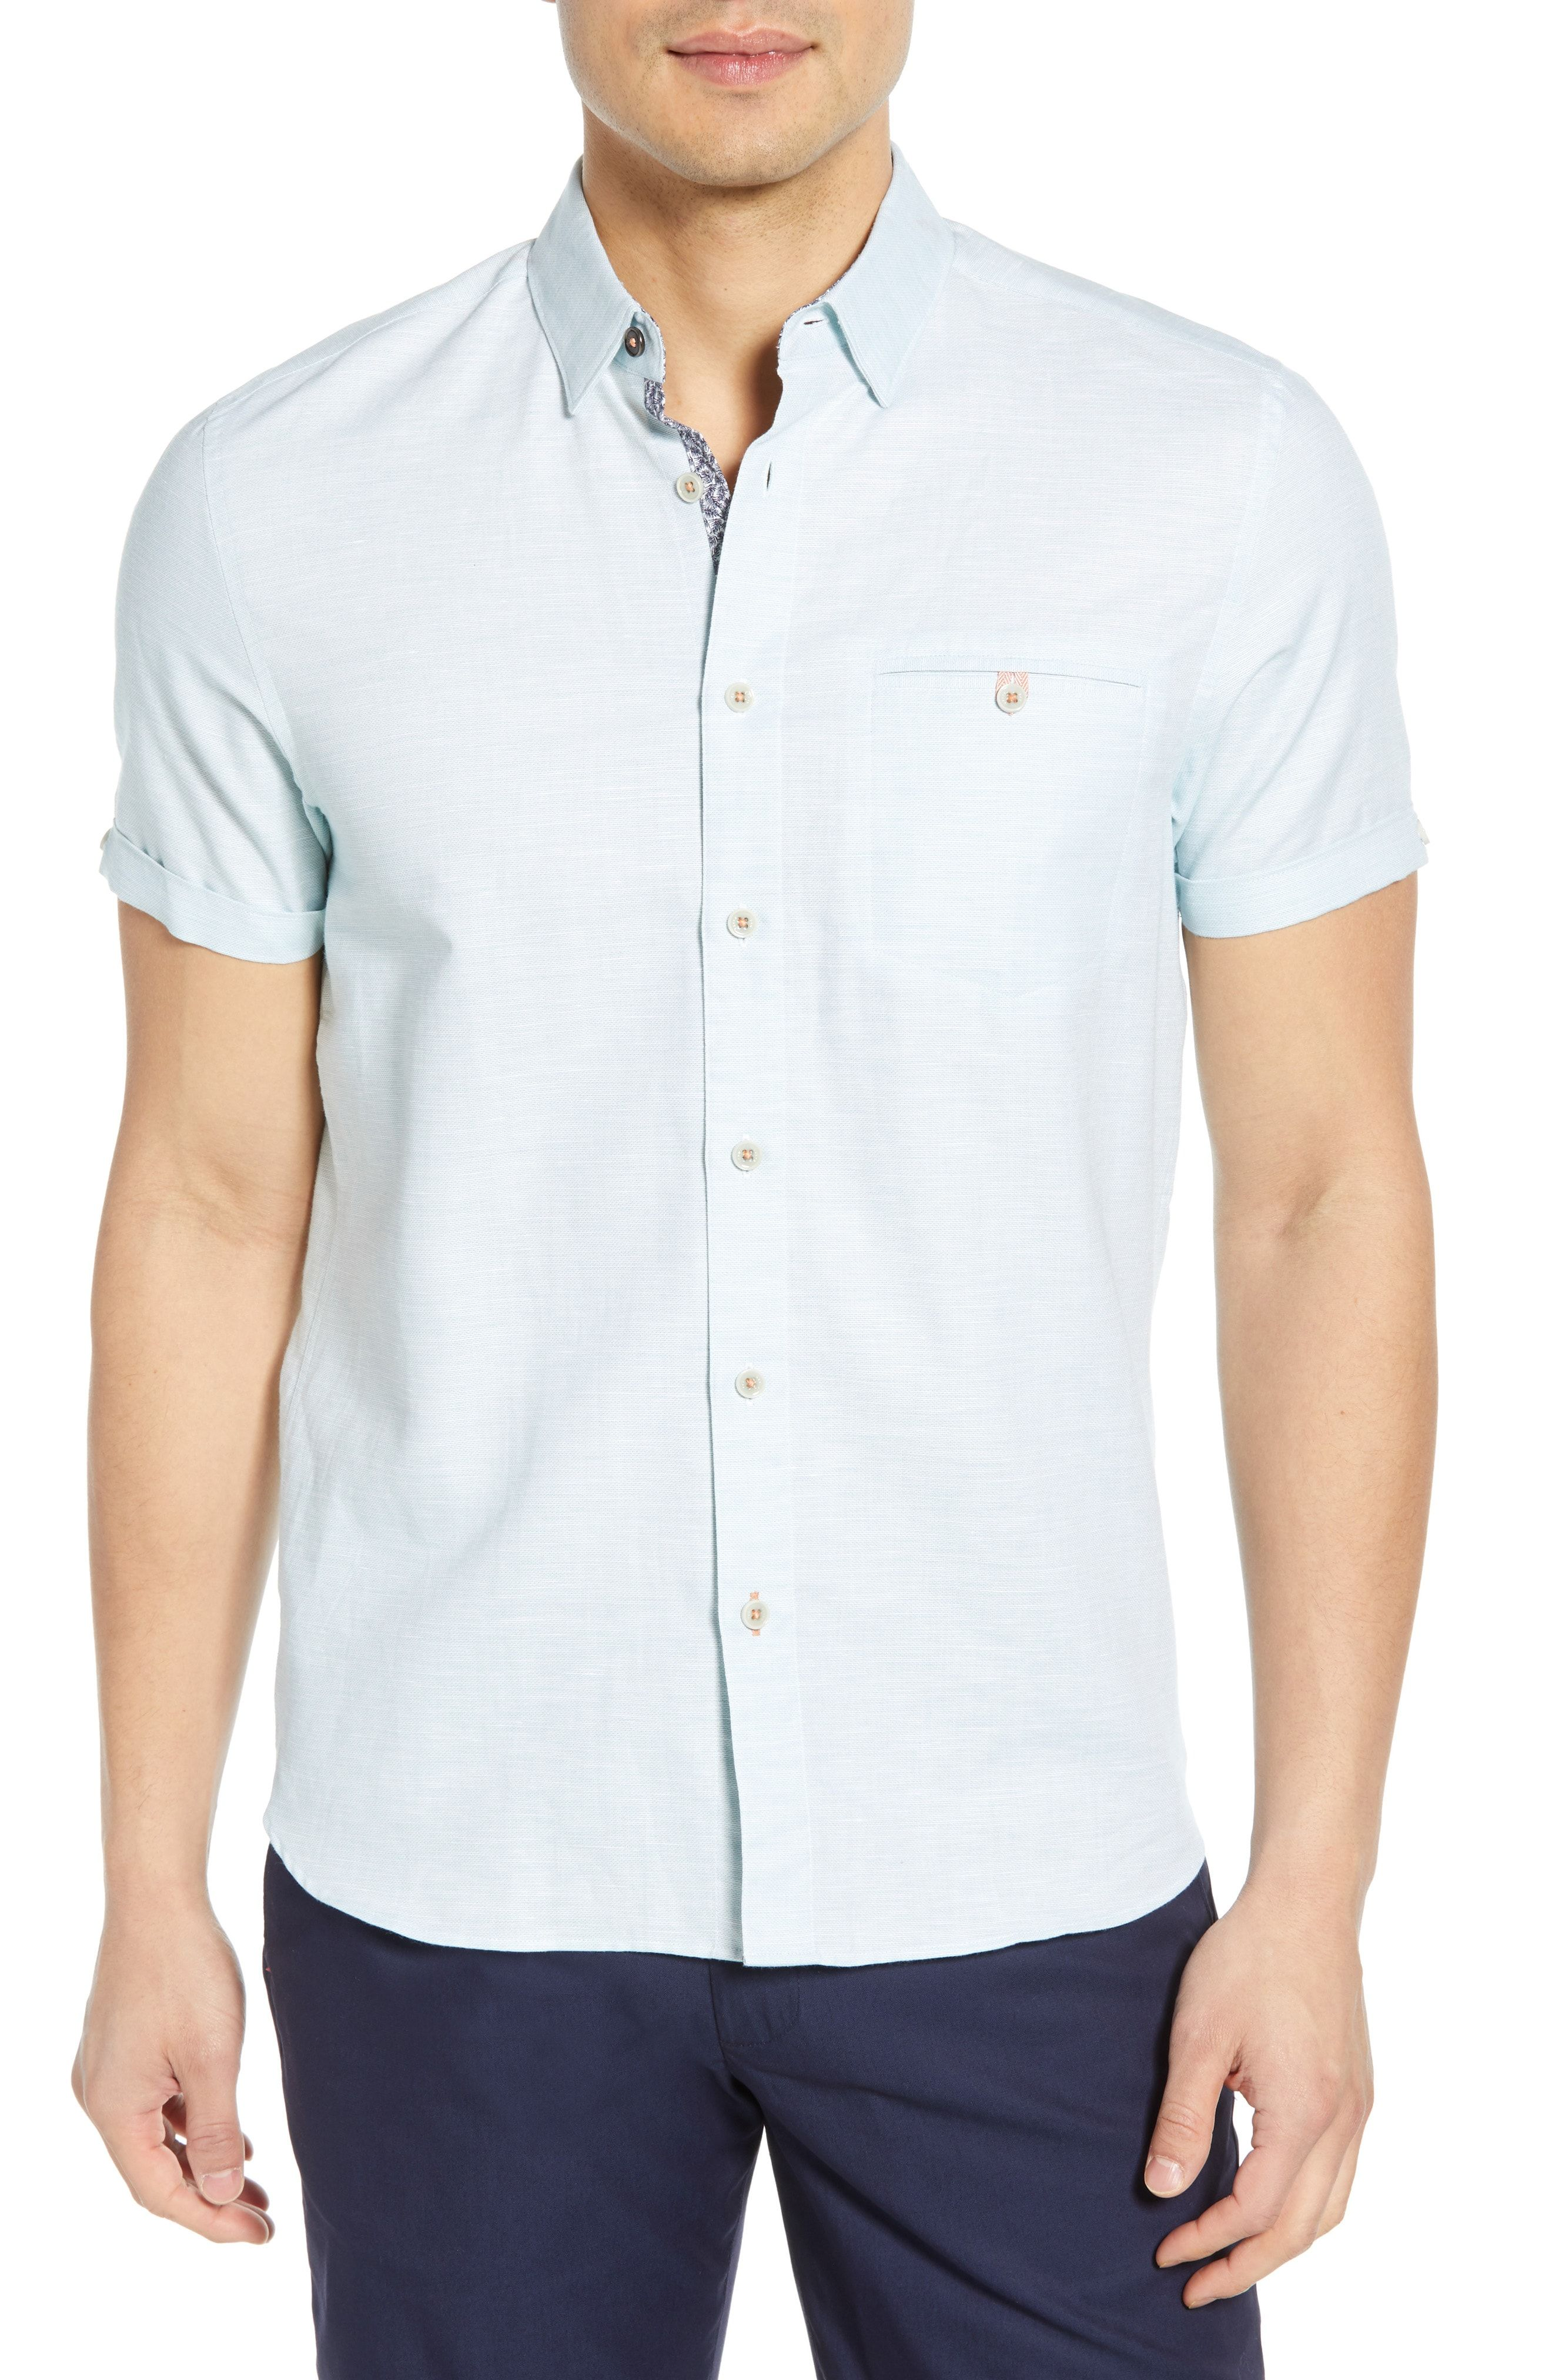 3b565bfd21b642 TED BAKER CLION SLIM FIT SPORT SHIRT.  tedbaker  cloth